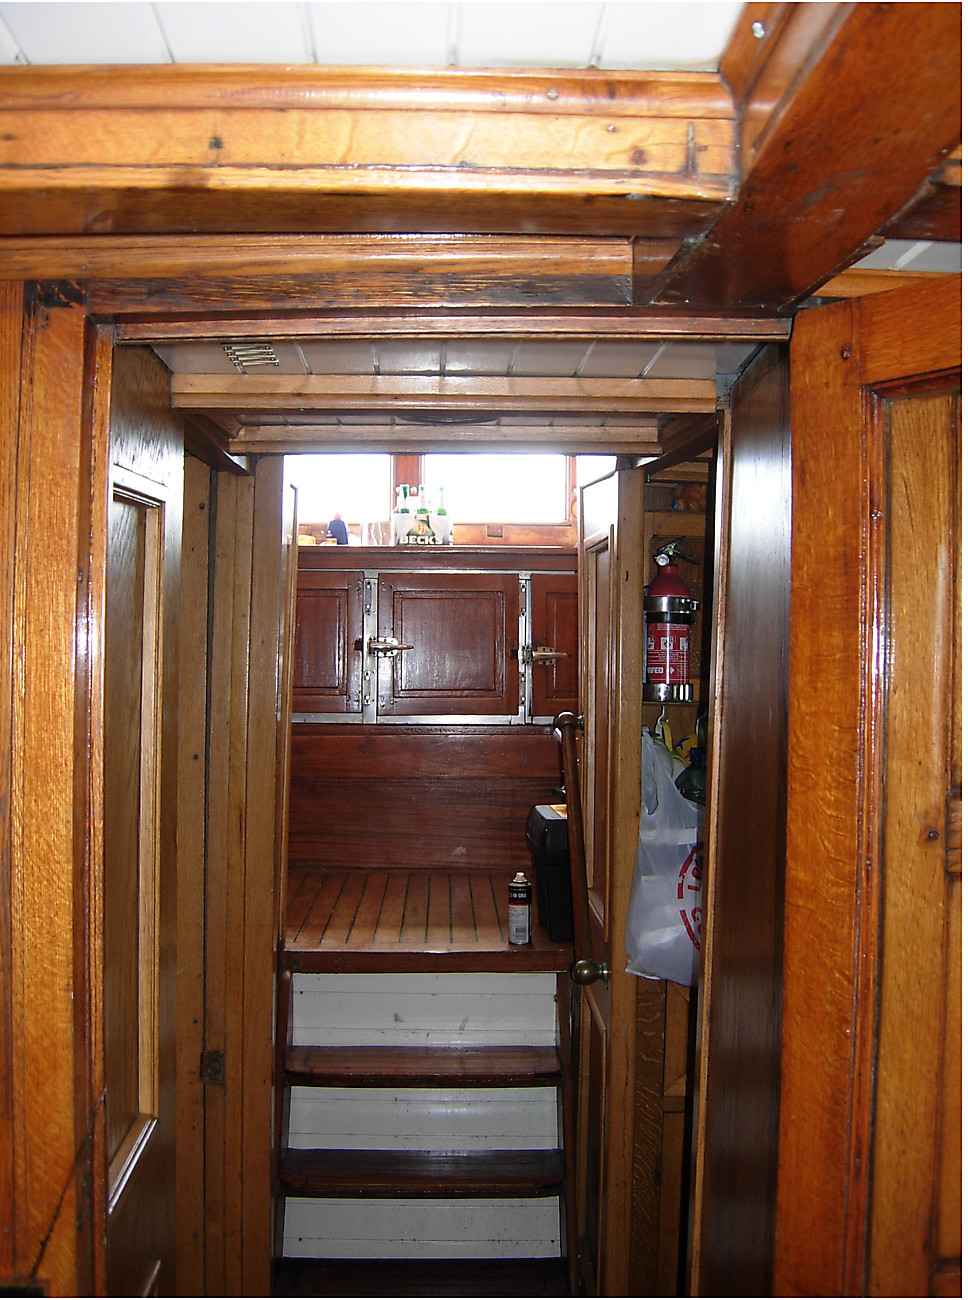 Looking towards wheelhouse from main saloon.